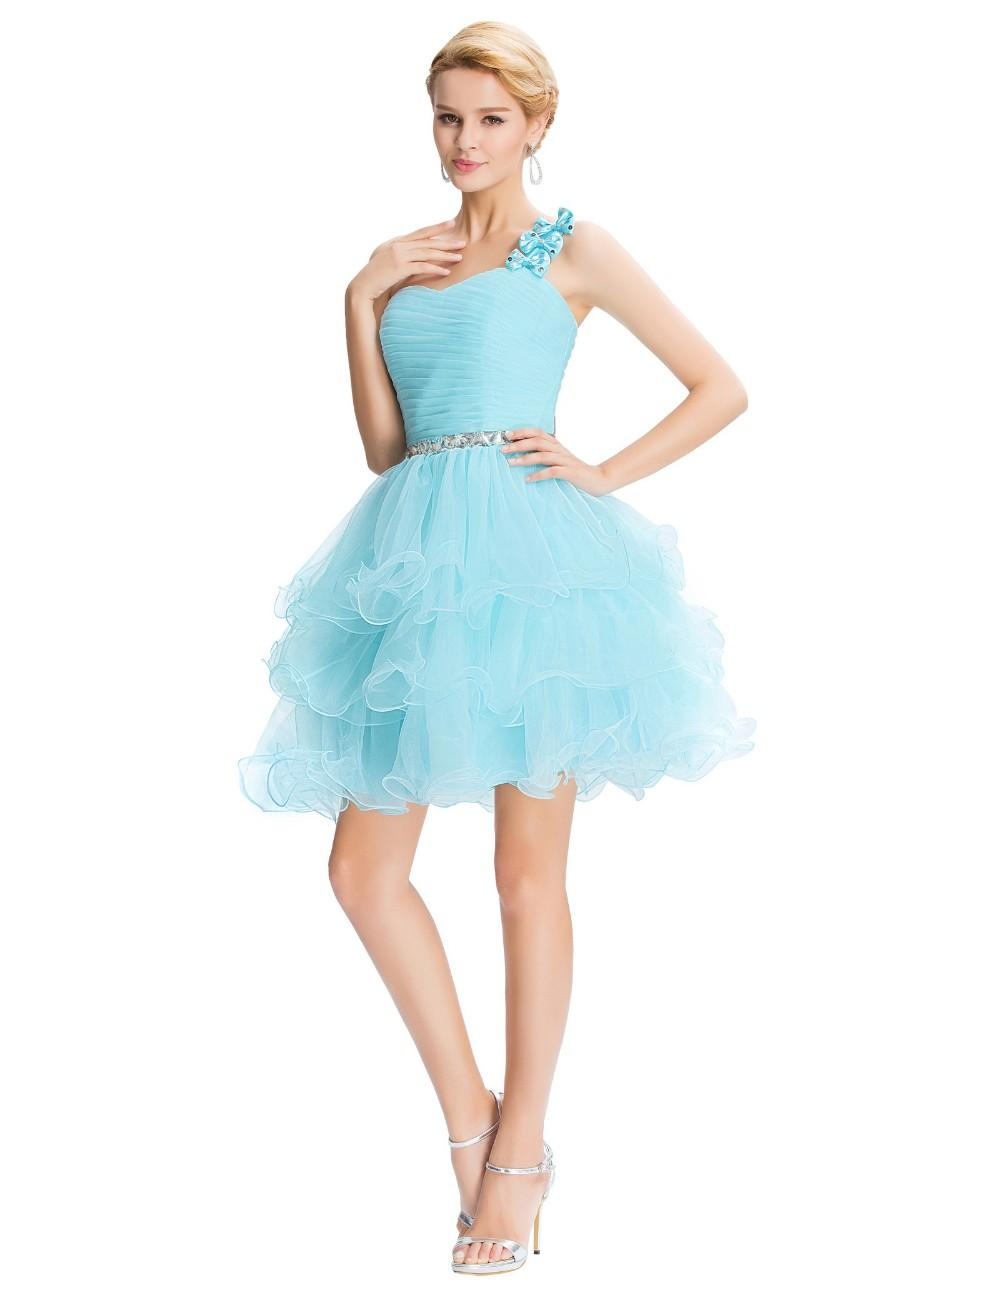 Bows Eleagnt Short Dress Party Gown Cheap Lace Up Back Tiered Skirt ...